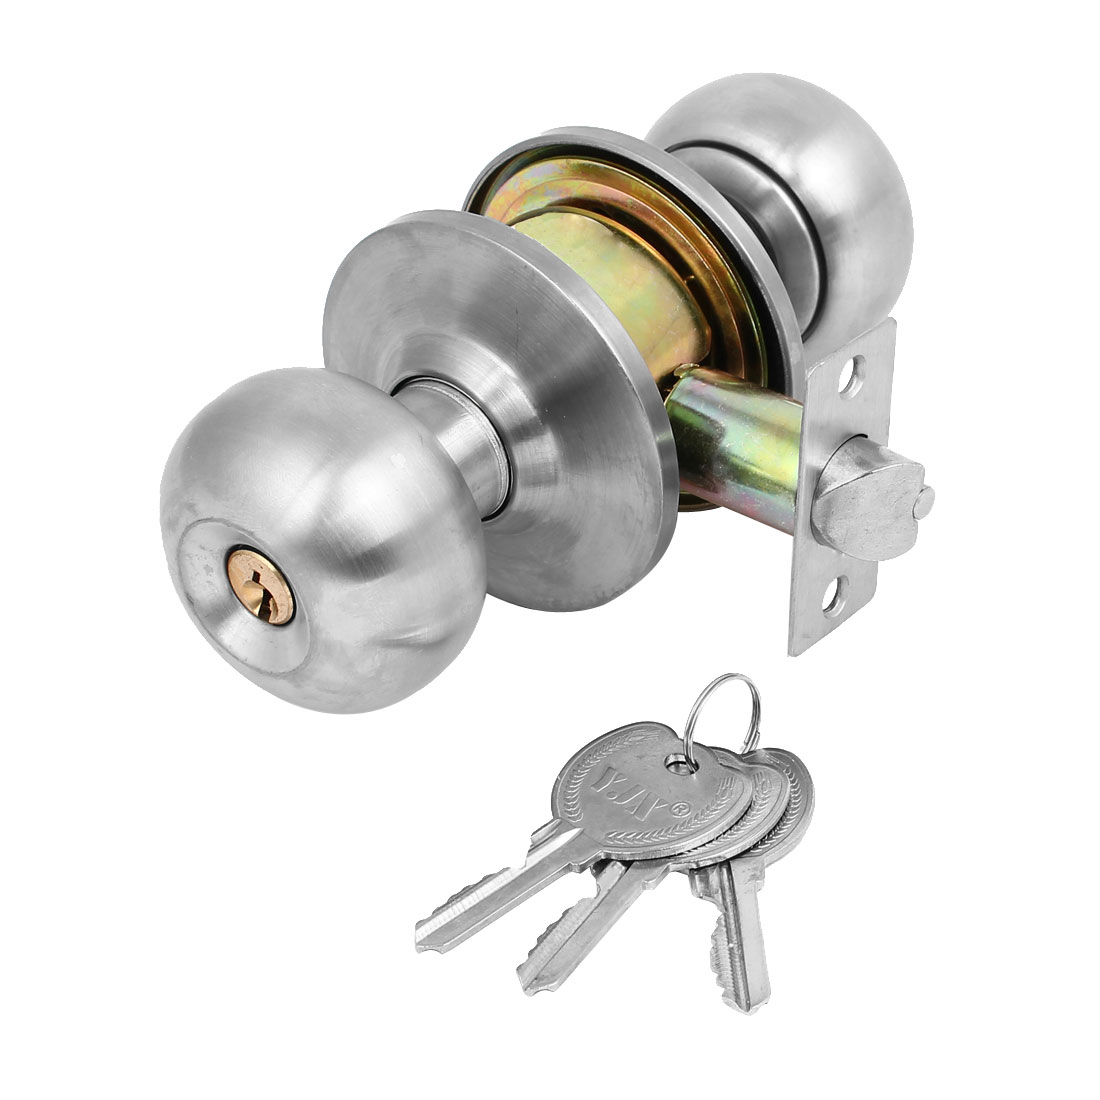 Ball Keyed Entry Door Knob Lock Set with Three Keyed Knobset for Bedroom and Bath Stainless Brushed